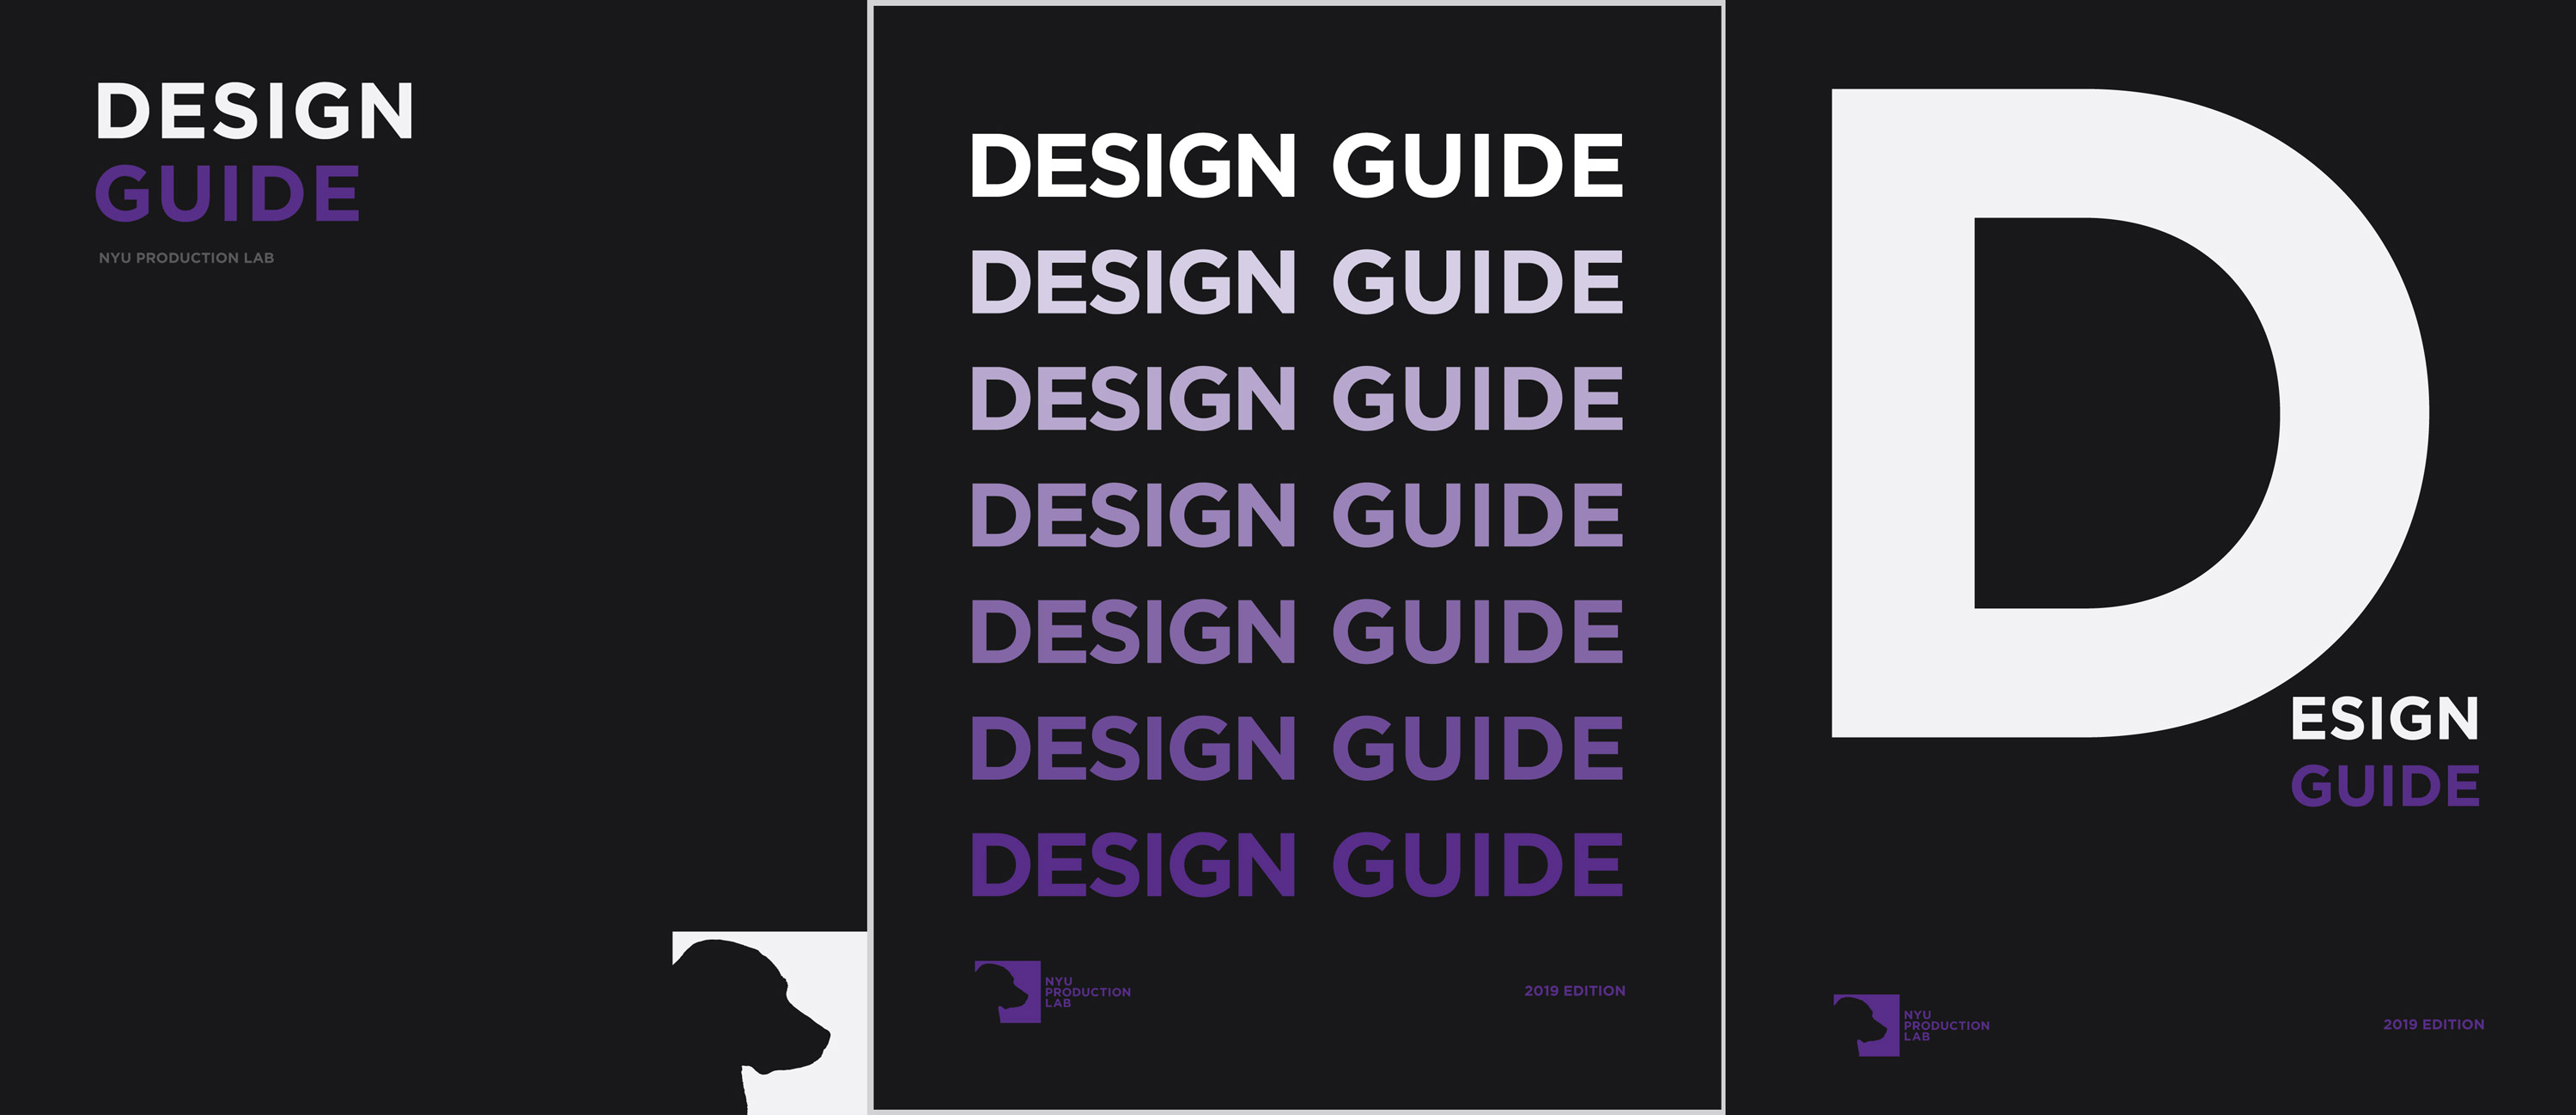 three versions of design guide cover